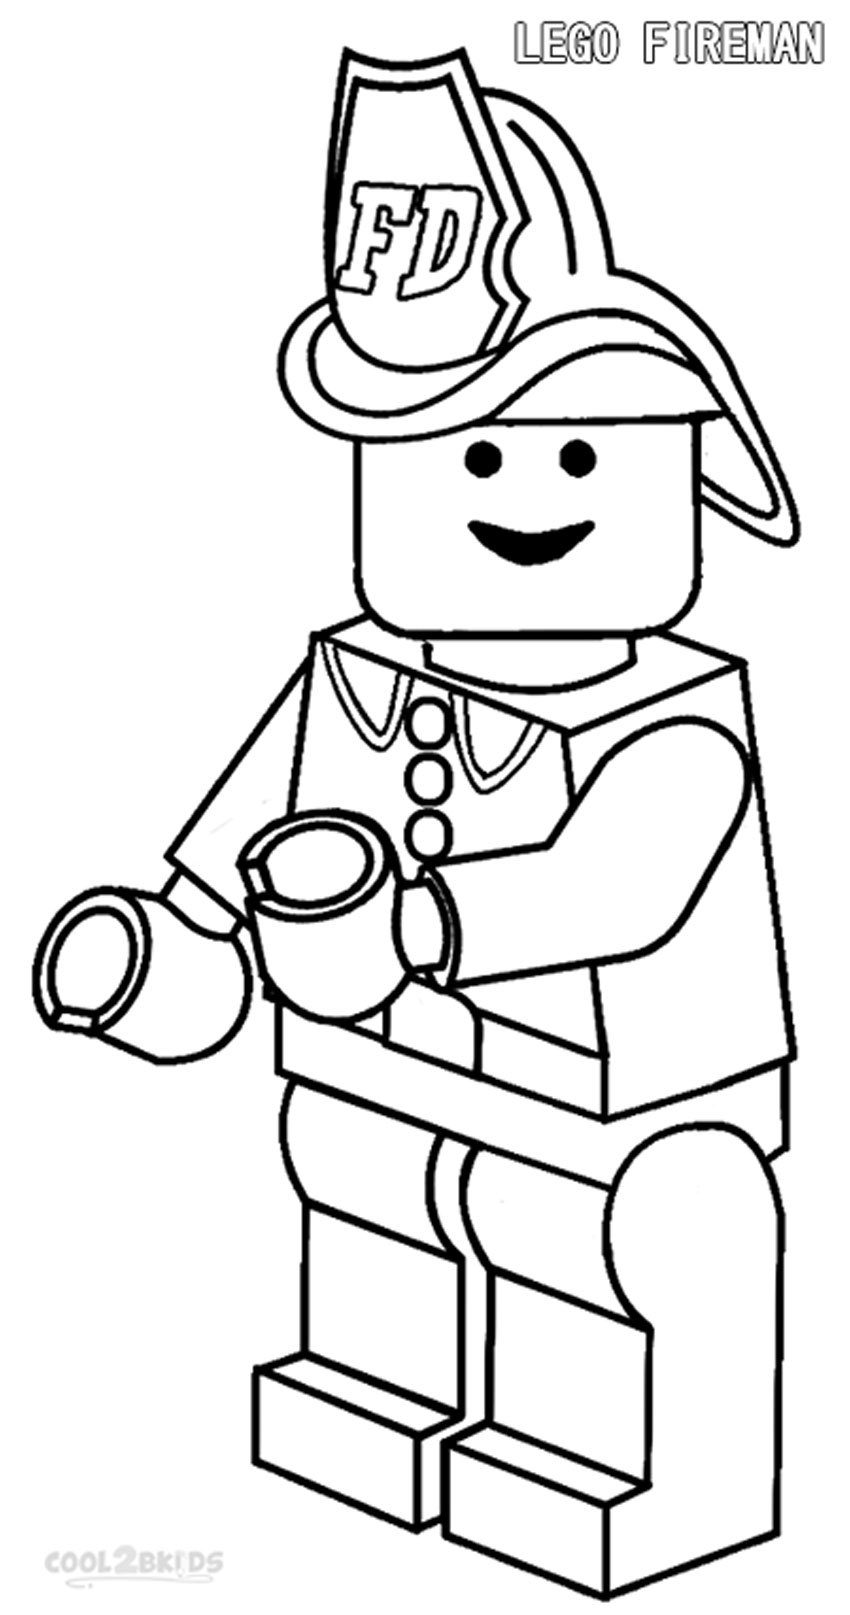 Lego Character Coloring Pages - Coloring Home |Lego Man Coloring Page